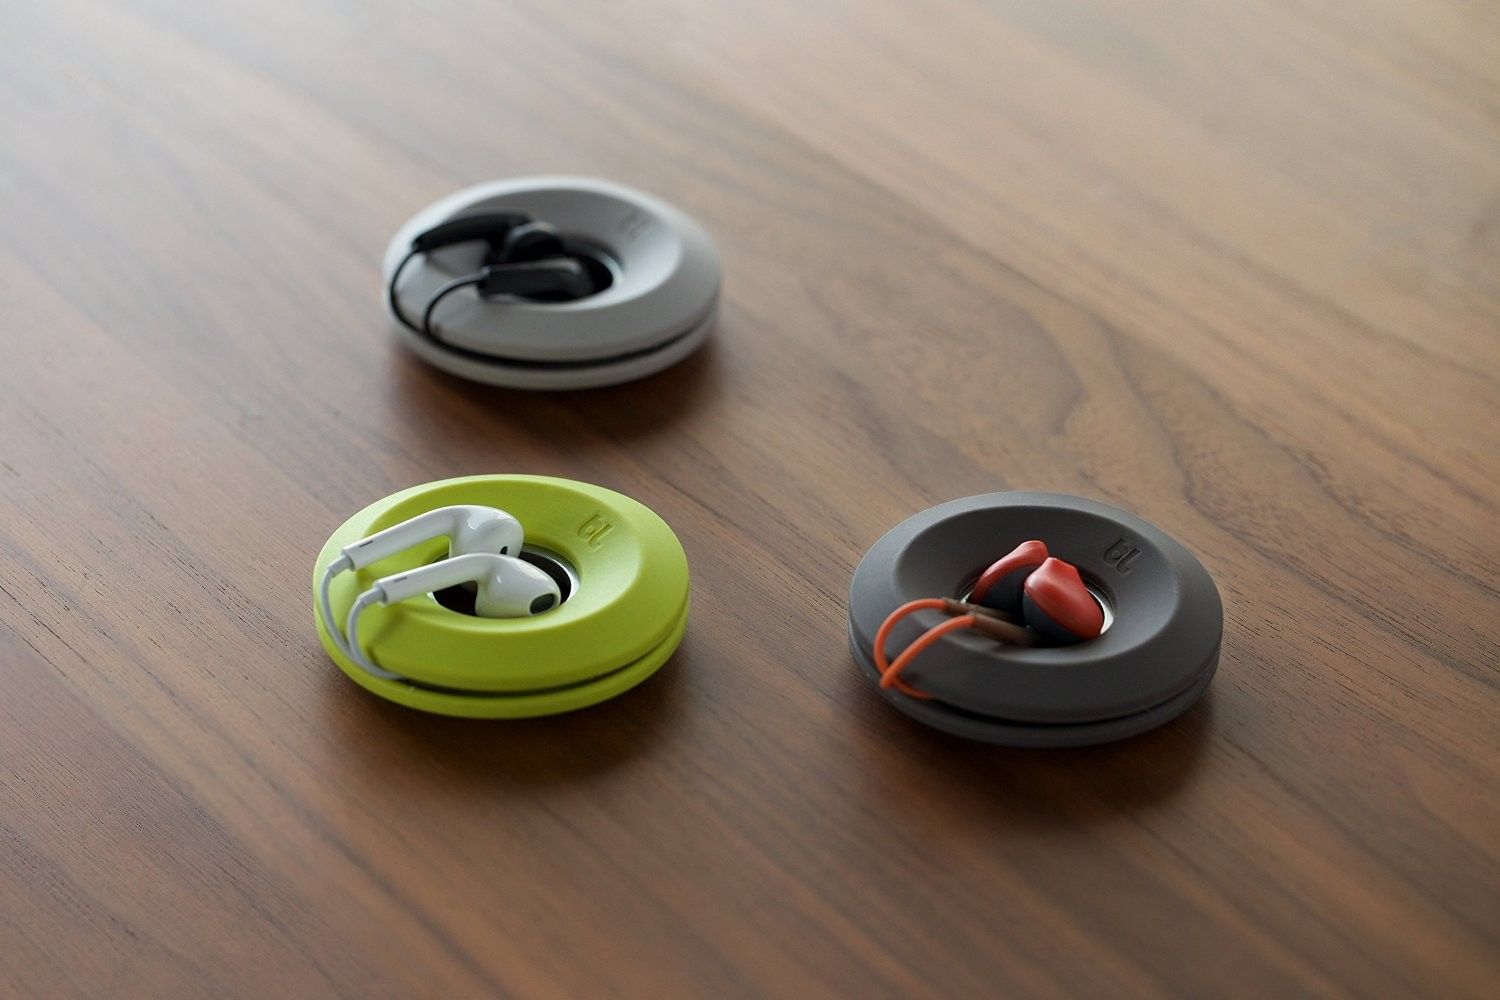 Bluelounge Cableyoyo - Earbud Cable Management - Dark Grey, CY10-DGR